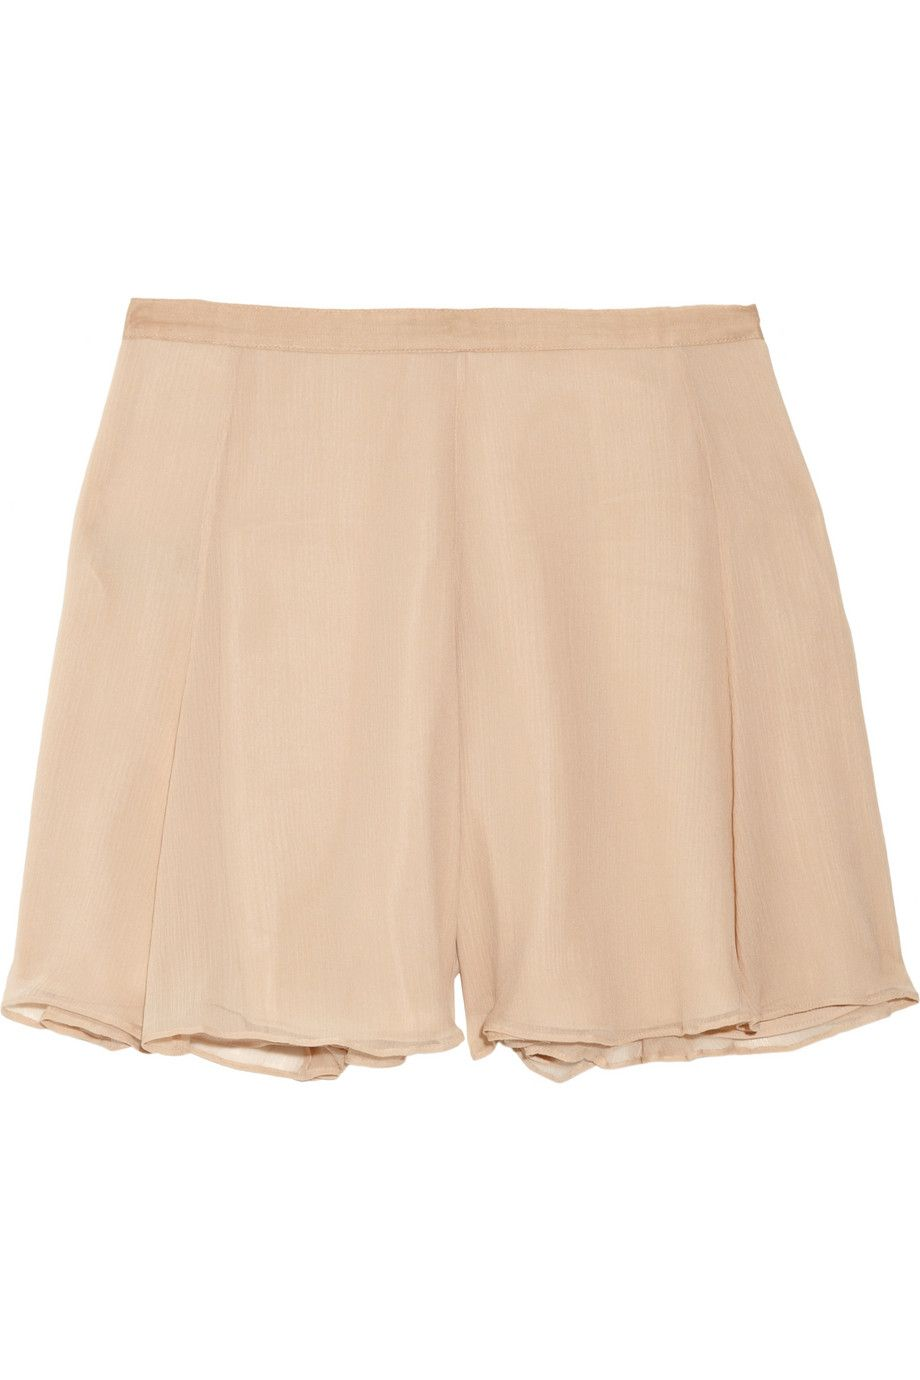 Elizabeth and James - Katia flared silk-chiffon shorts